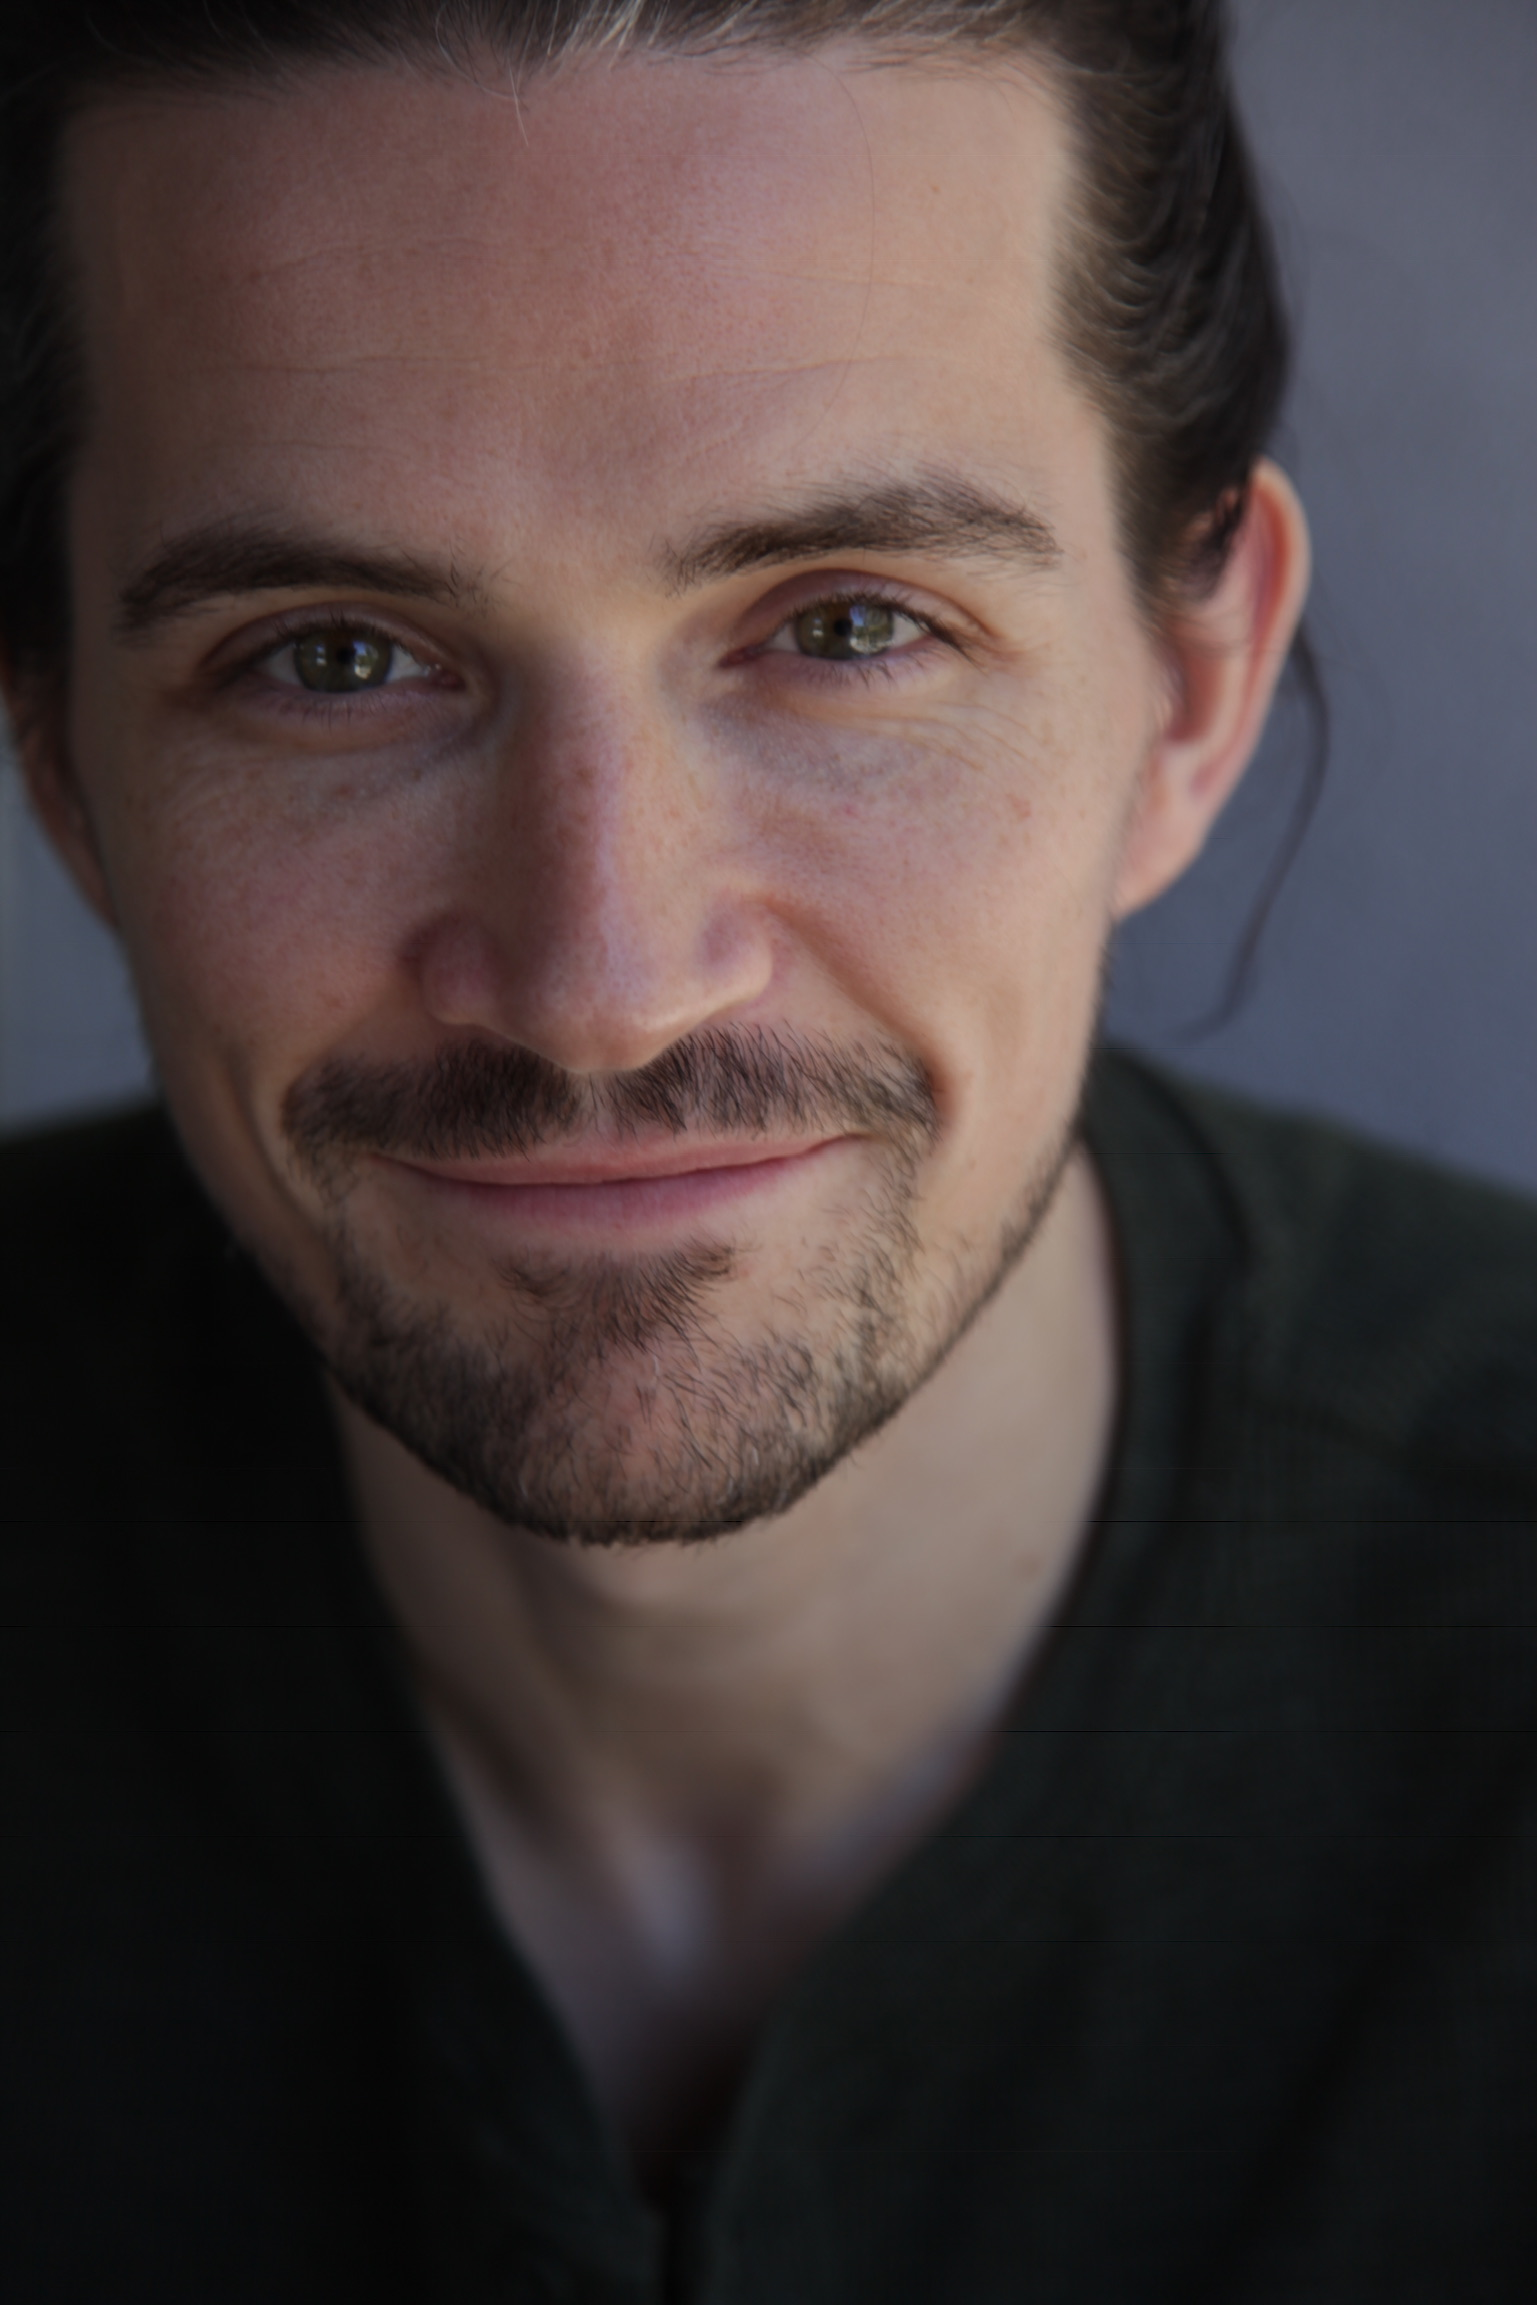 Patrick James Lynch is an actor, director, producer, writer, and health advocate. He serves as CEO to the digital content agency and production company,  Believe Limited .